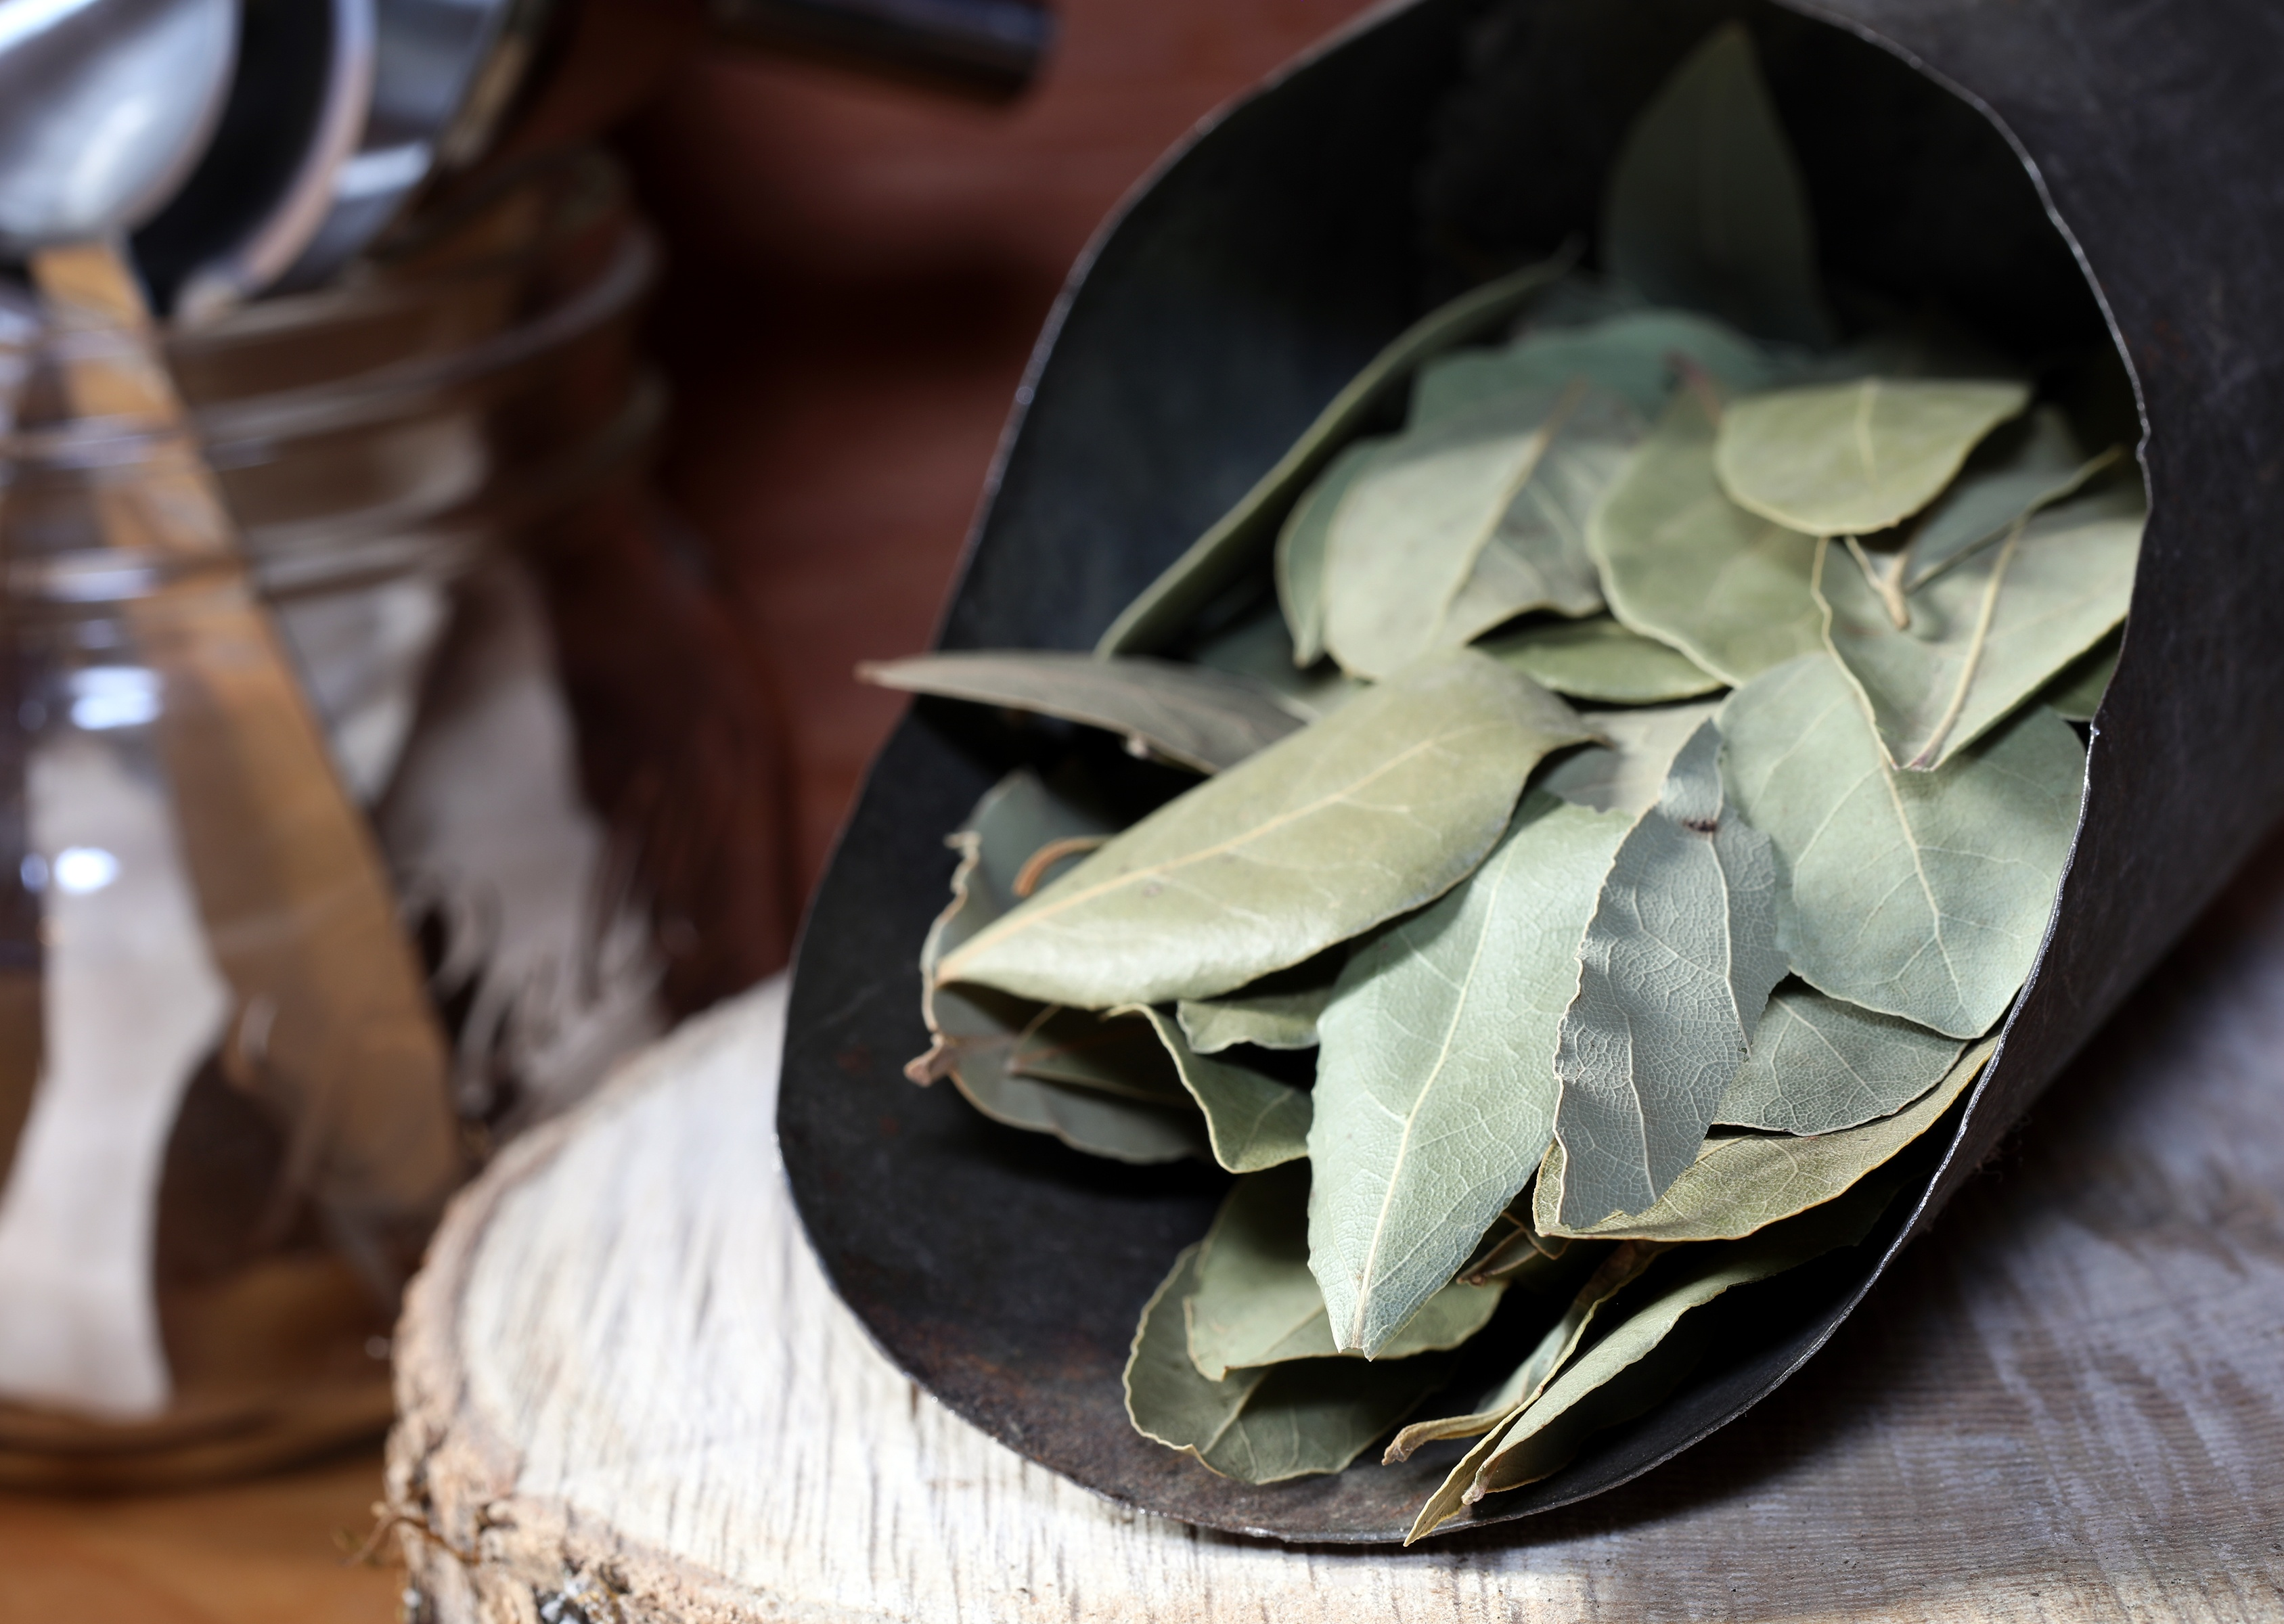 Bay Leaves in herbal apothecary near cooking utensils